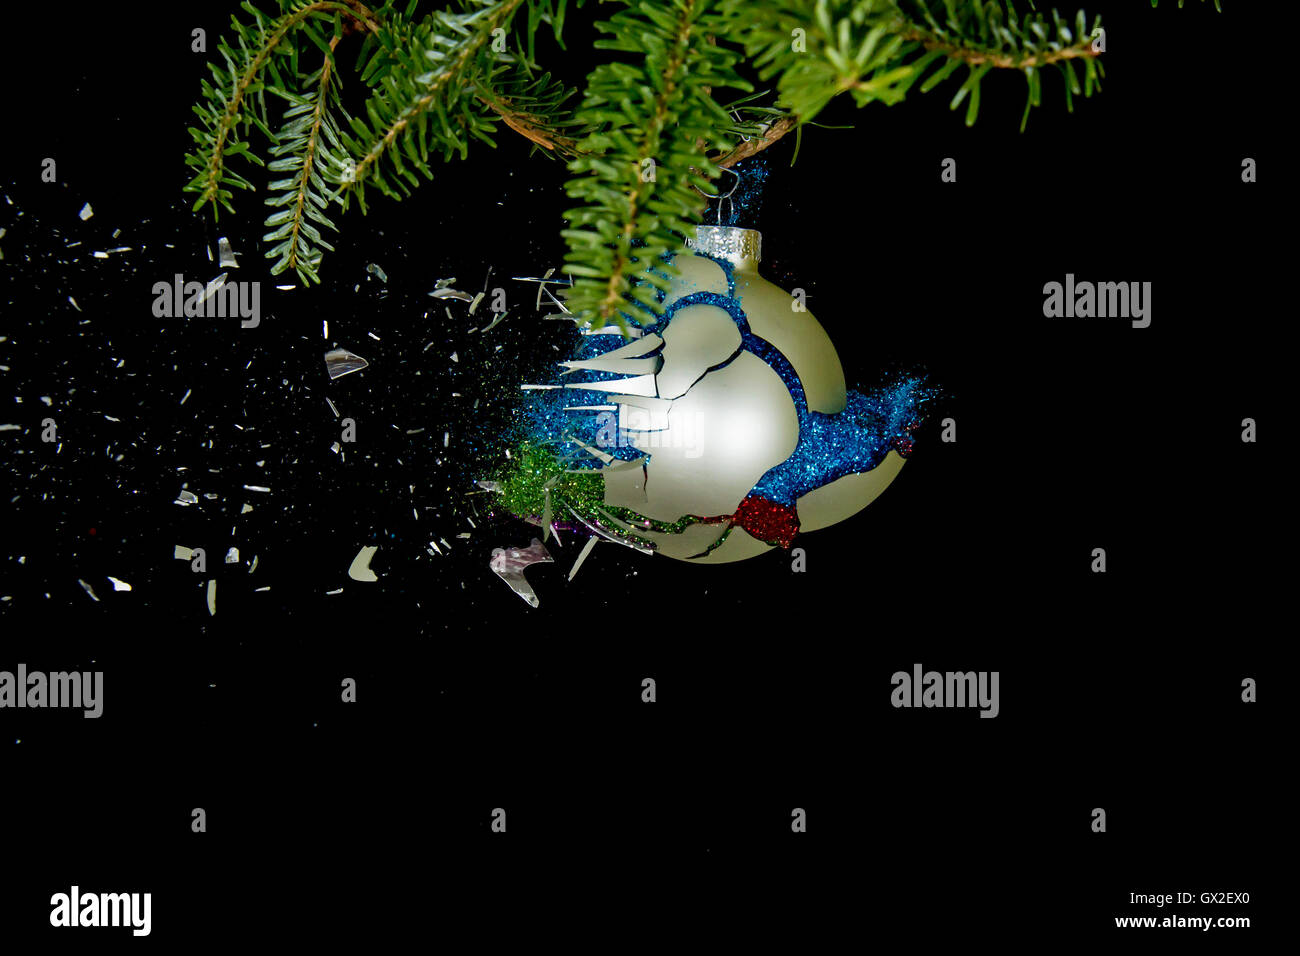 Christmas ball exploding. Glitters falling down. - Stock Image